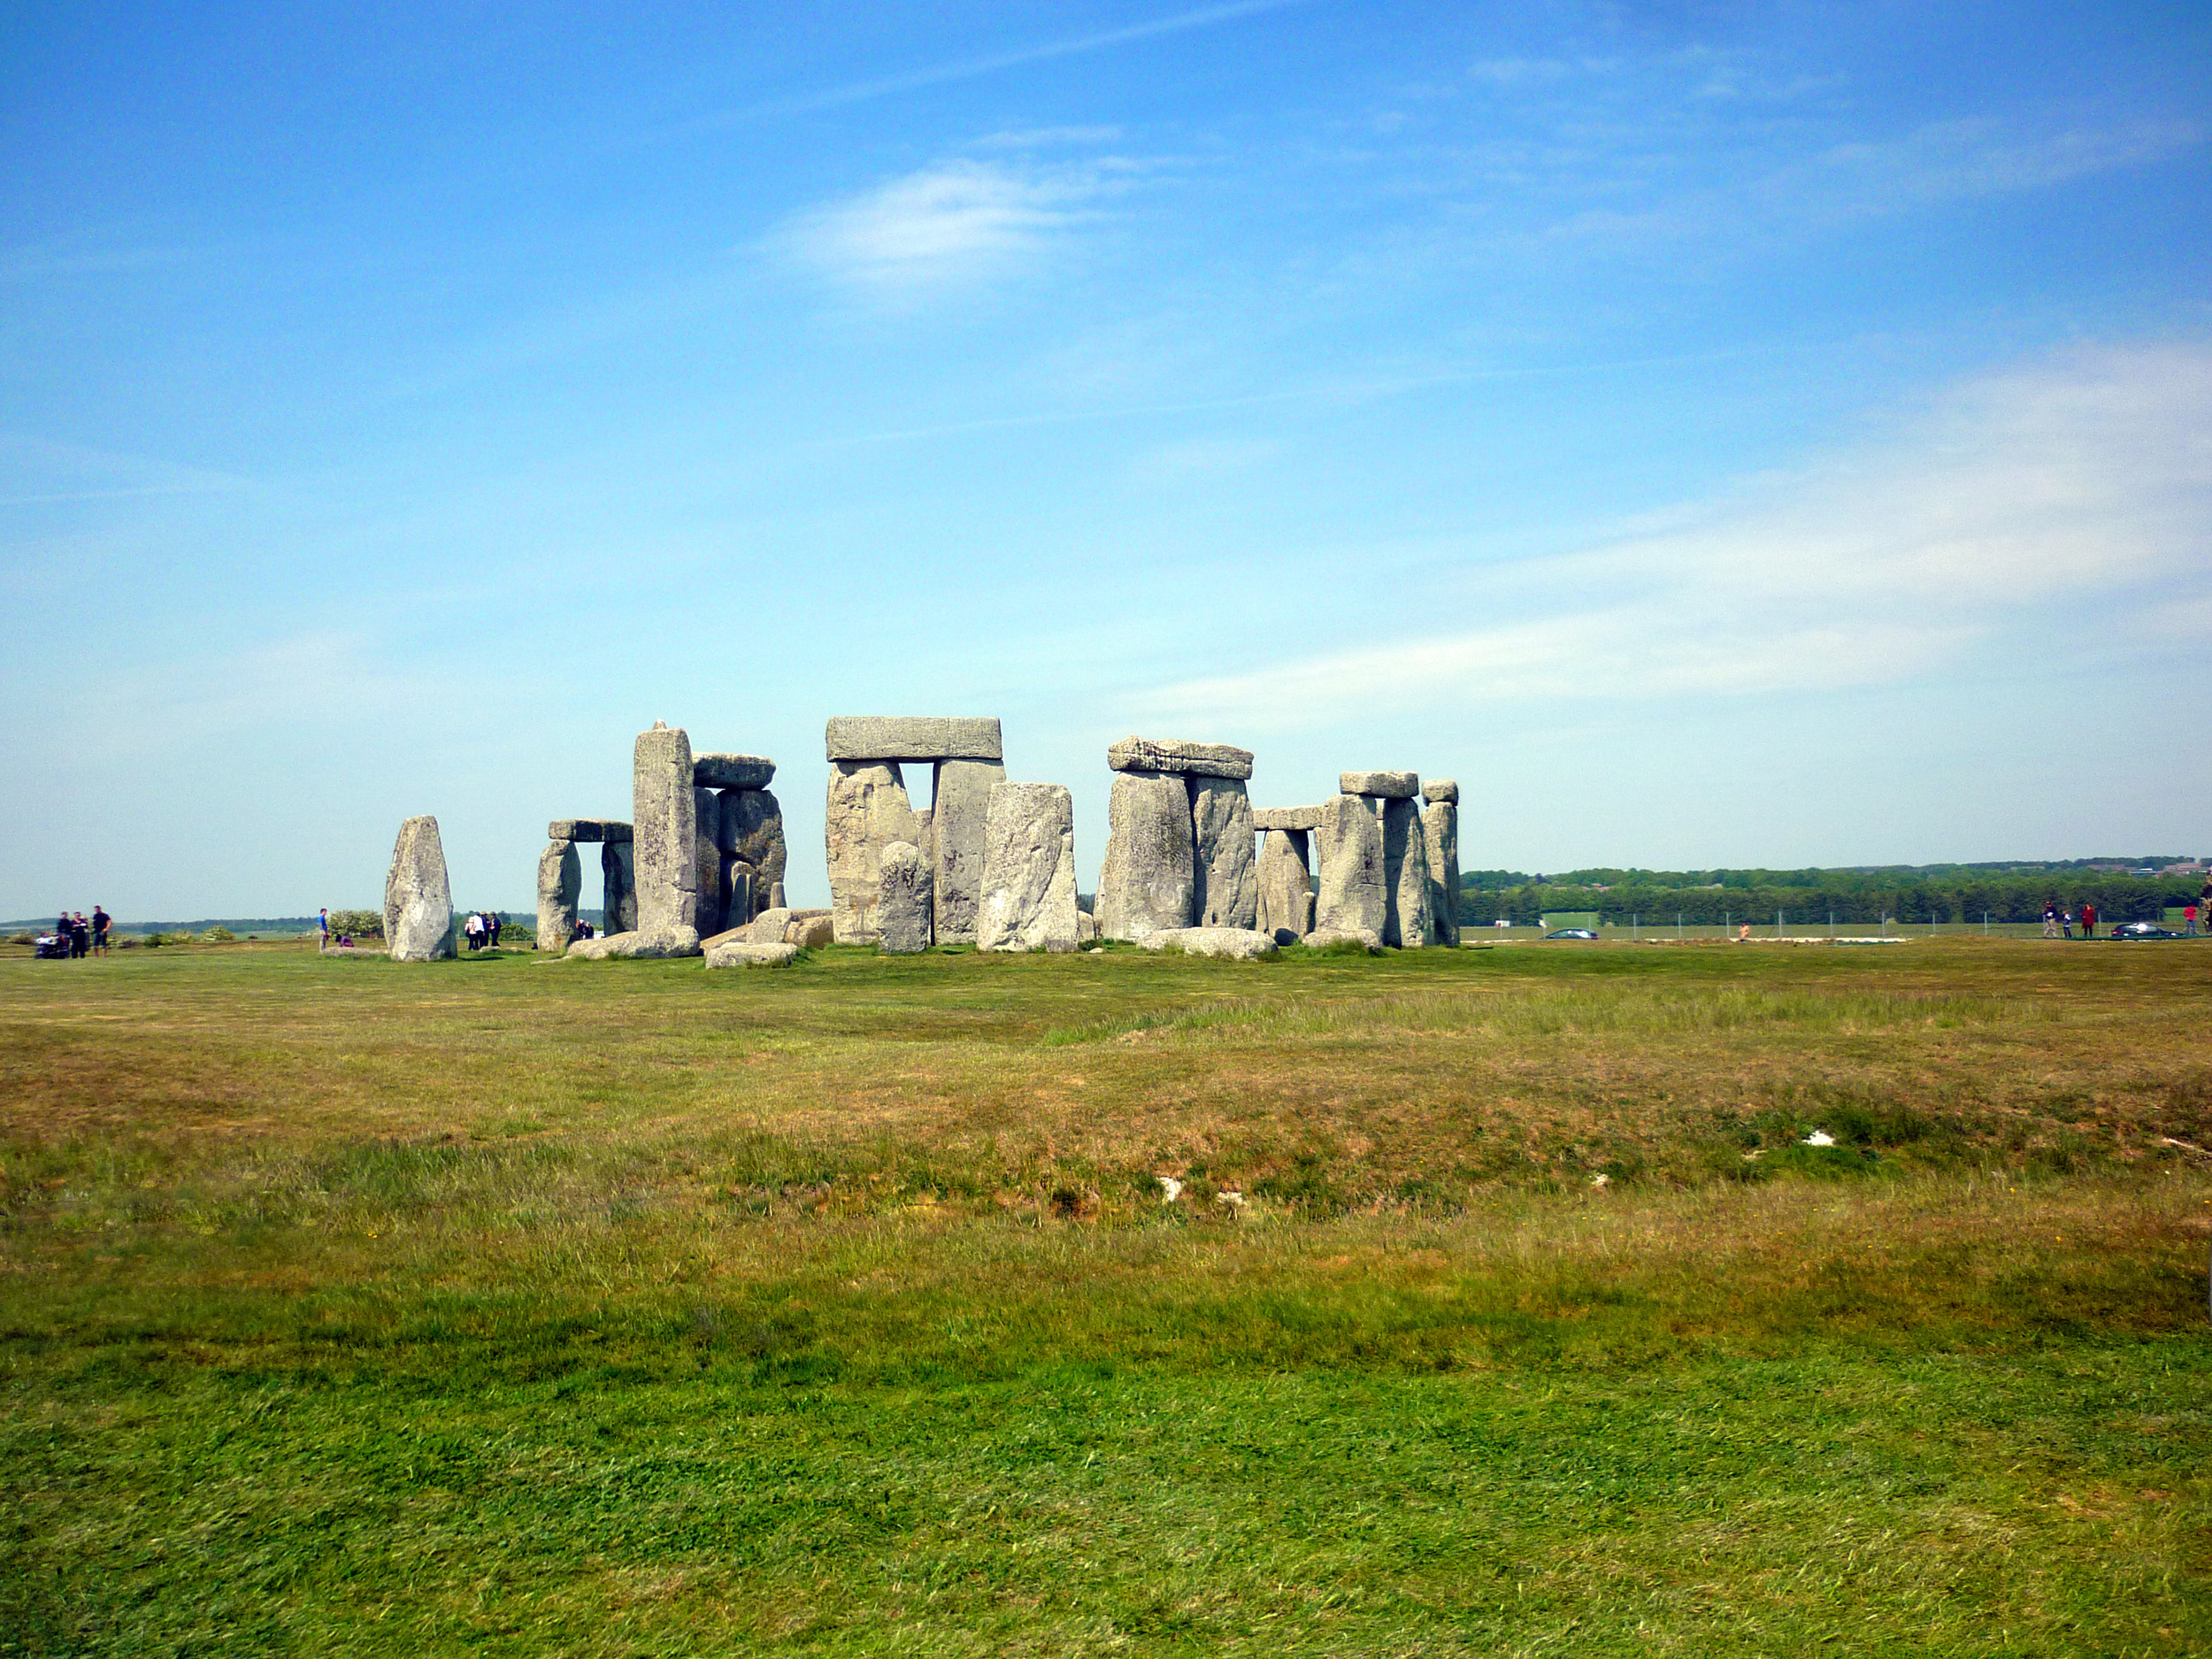 one of the uk's most famous landmarks, stonehenge